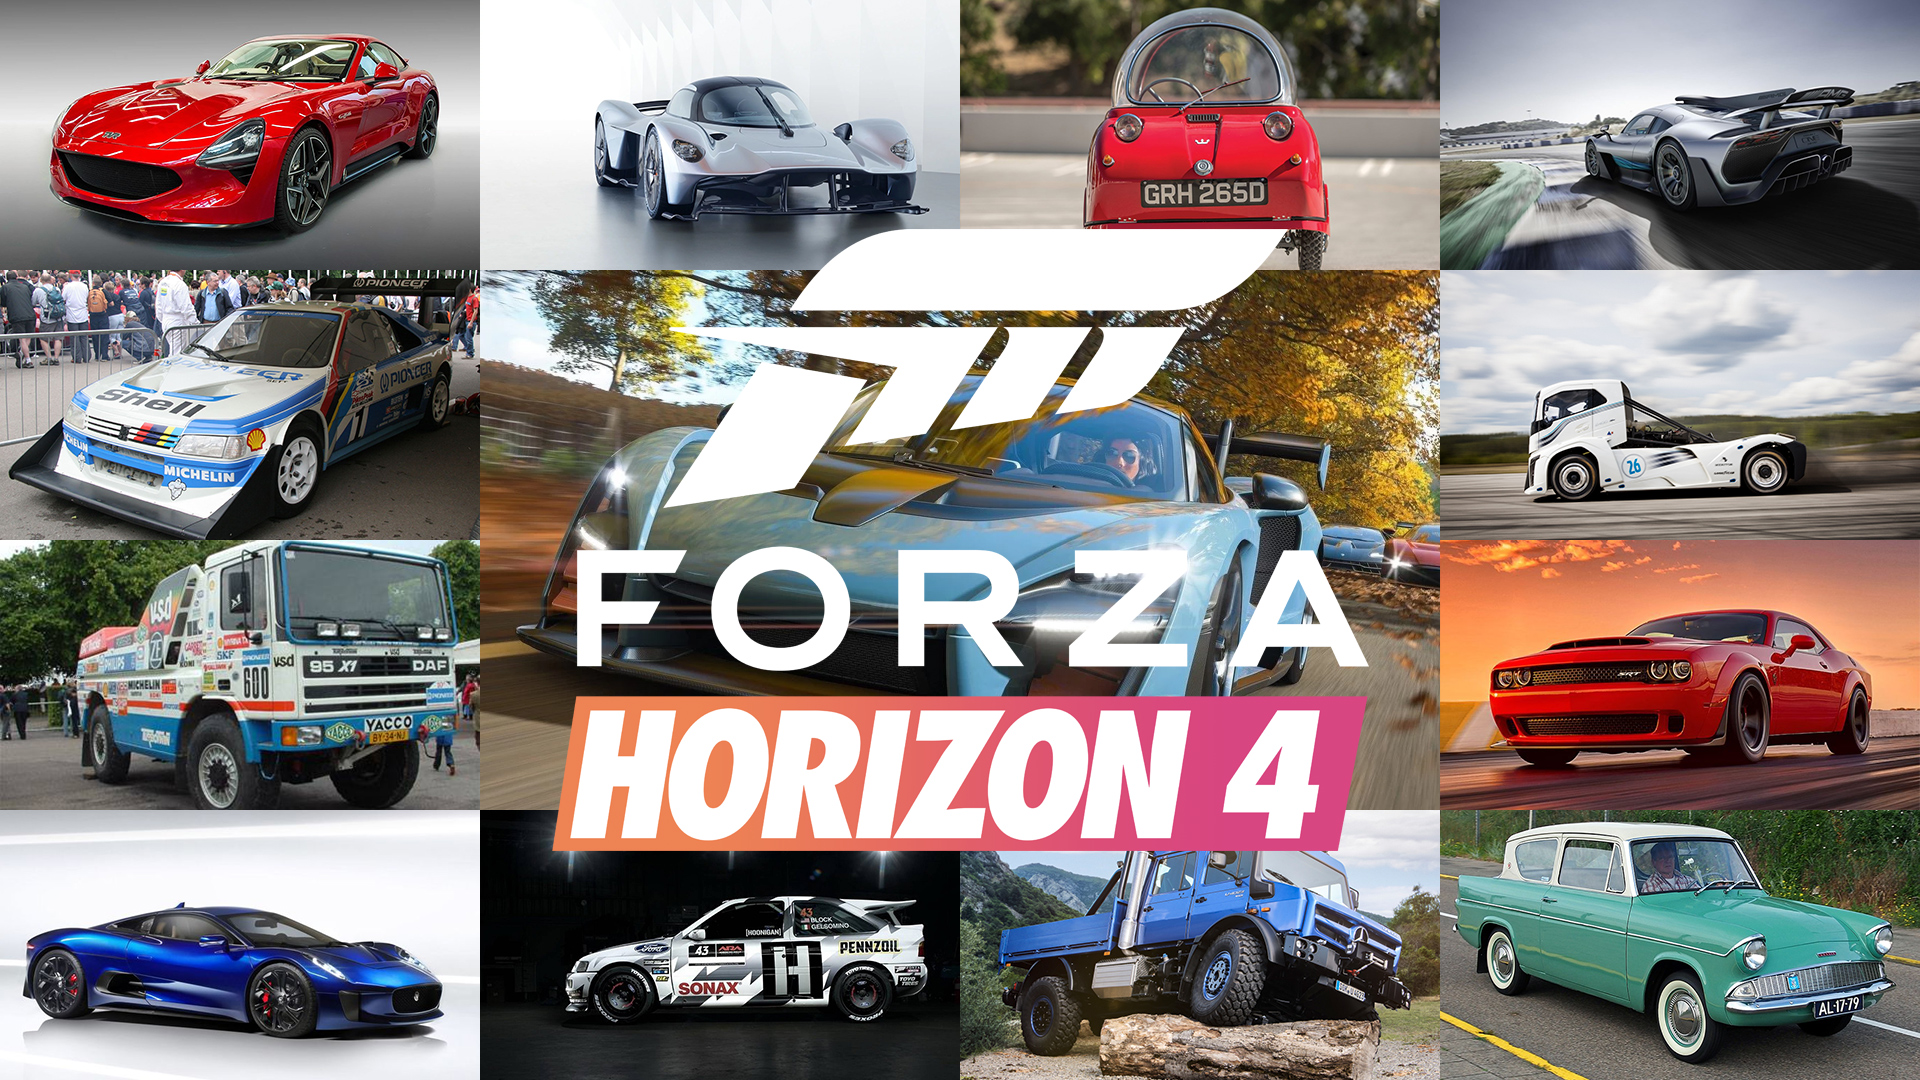 Fh4 Car List is this the full car list for forza horizon 4?